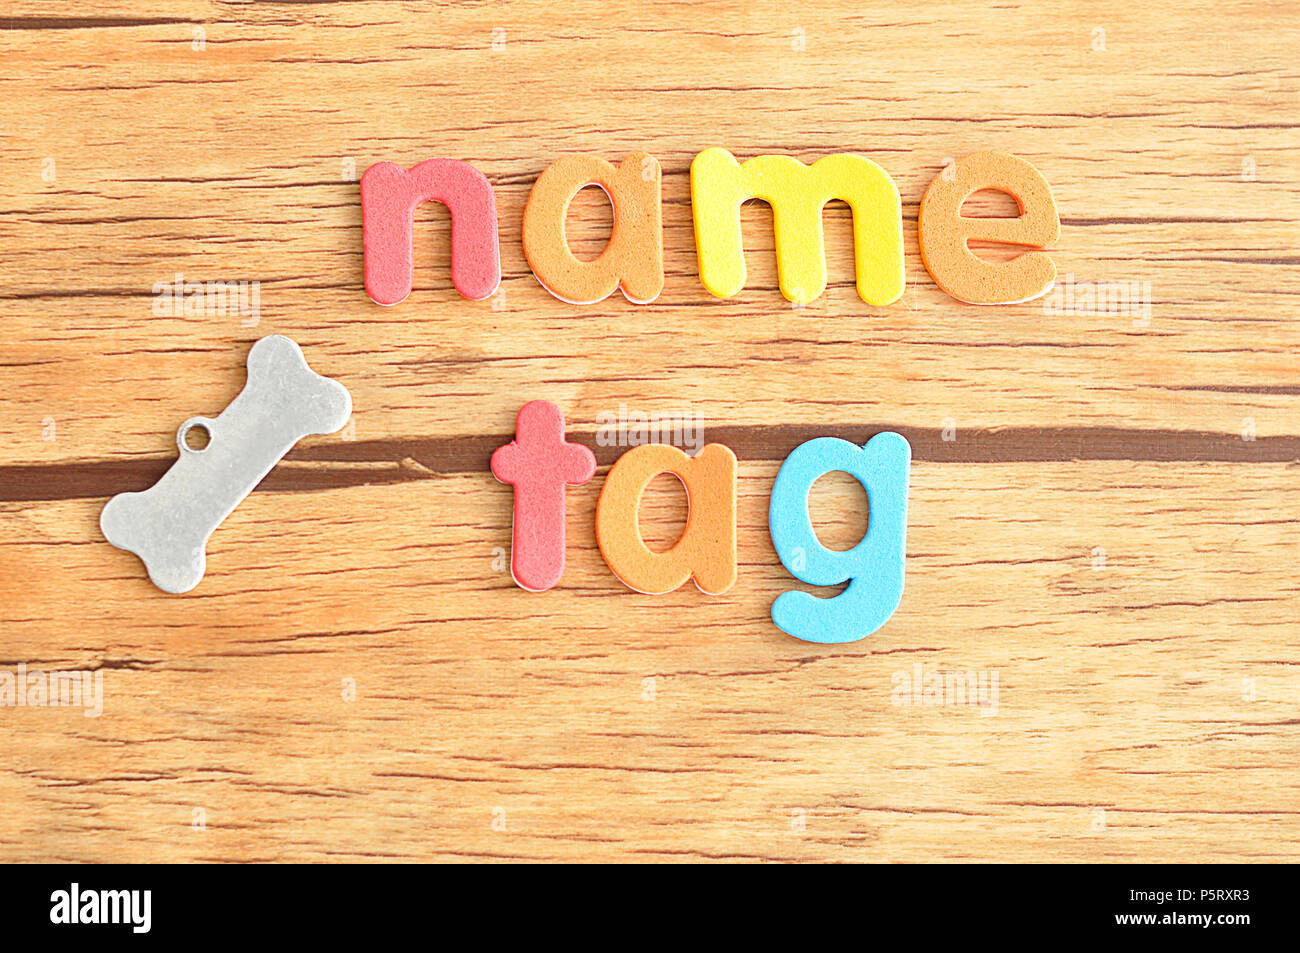 A bone shape name tag for a dog with the word name tag Stock Photo